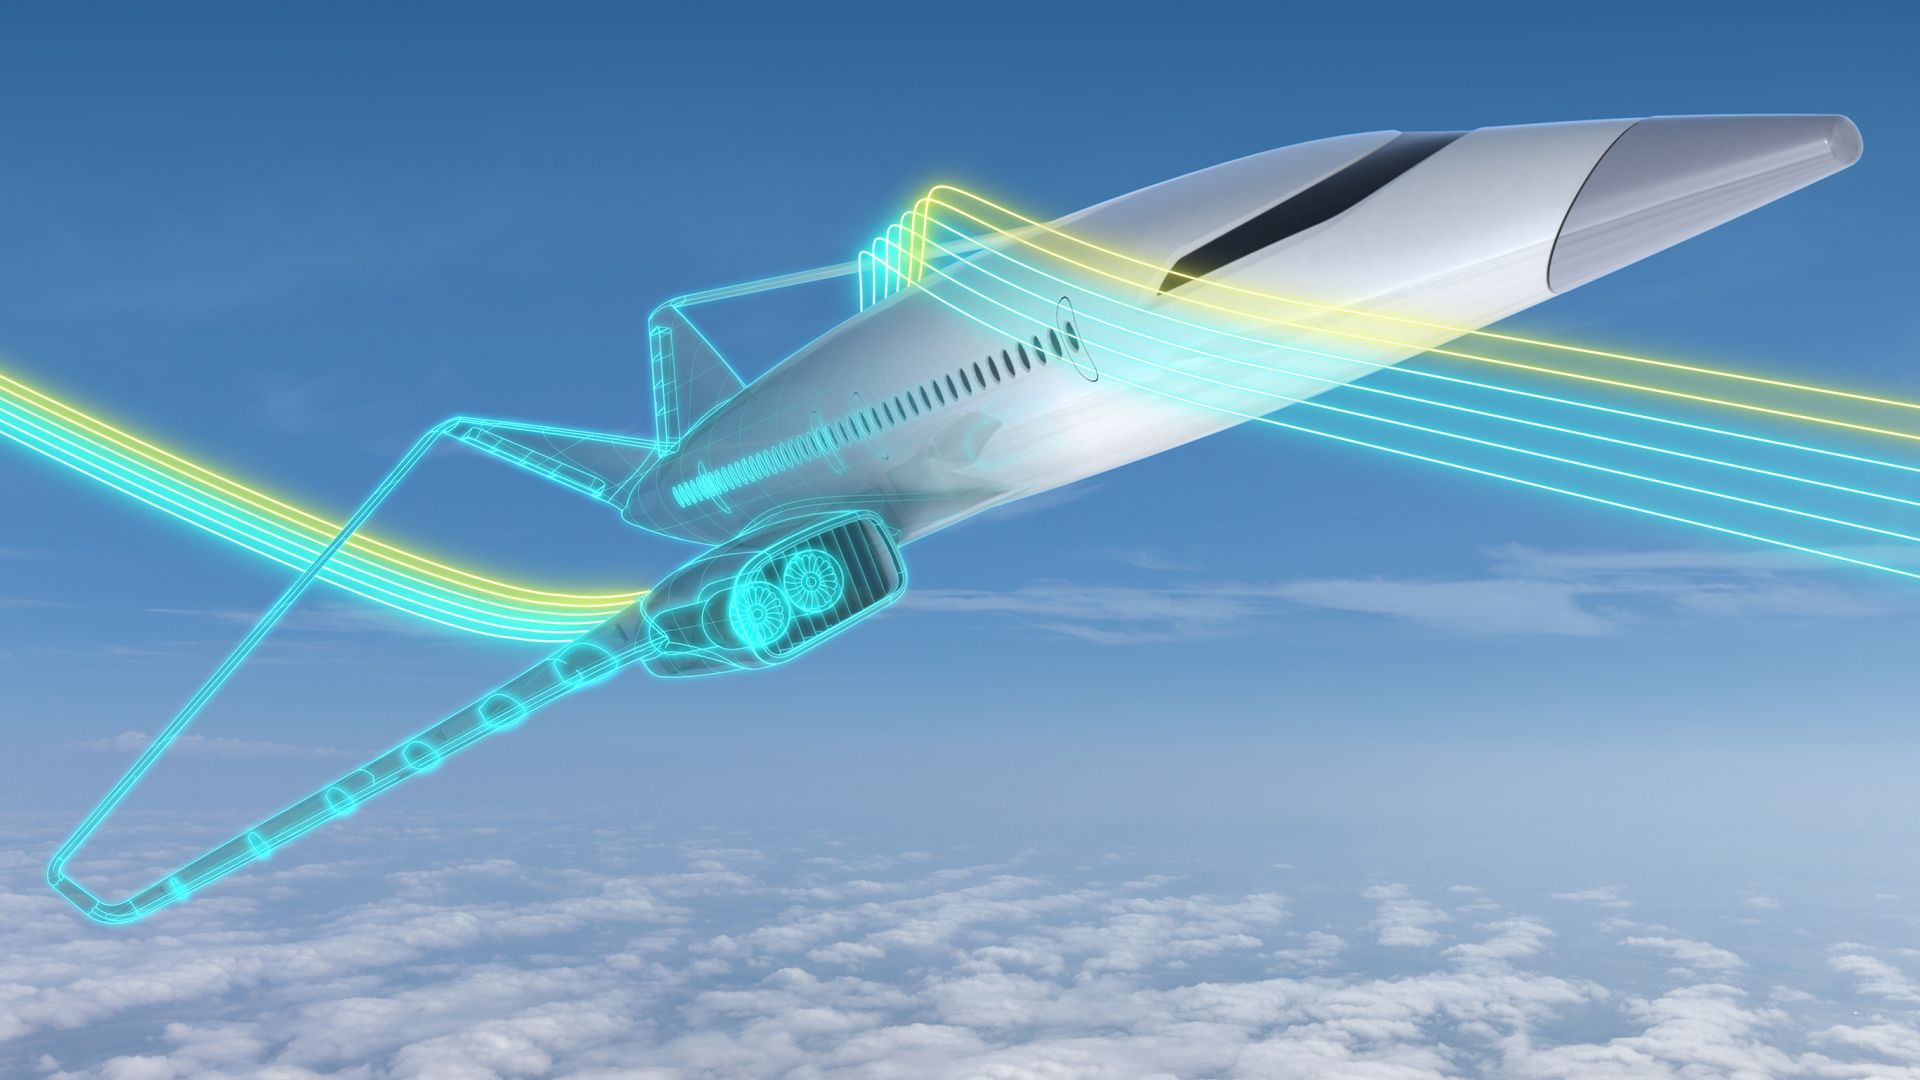 Future technologies will change the aerospace and defense industry.